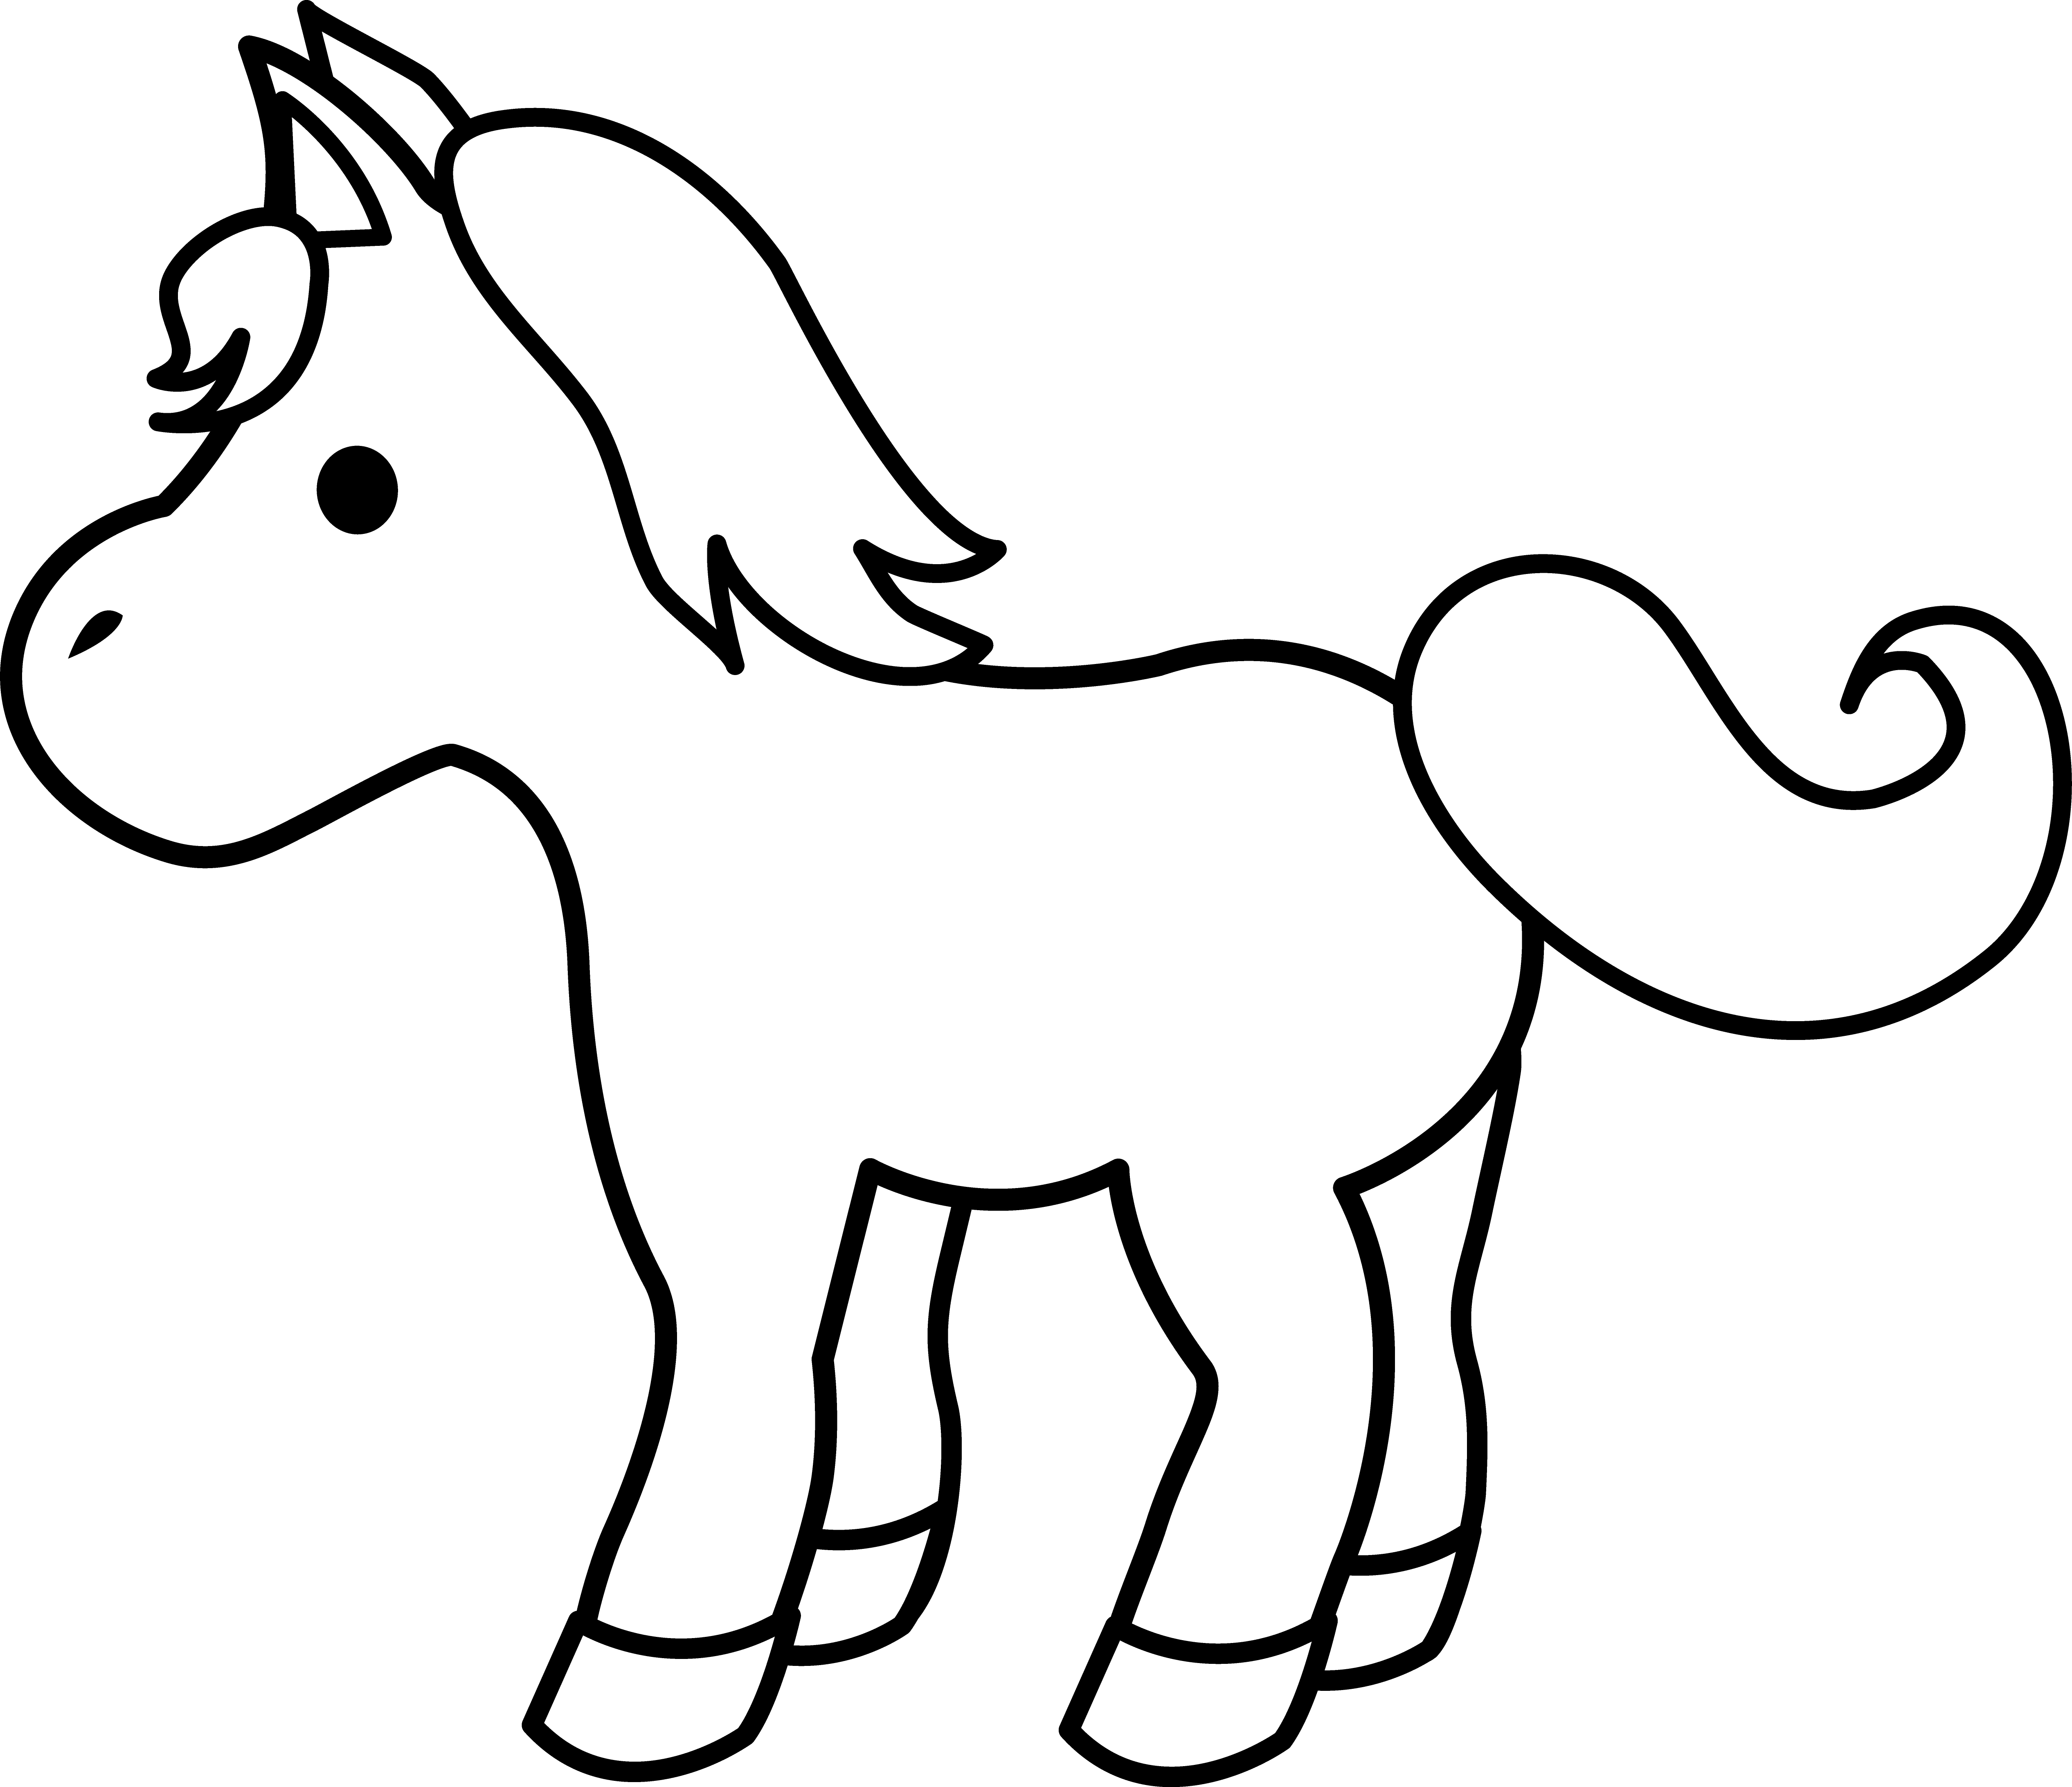 Horse Pony Foal Black and white Clip art.